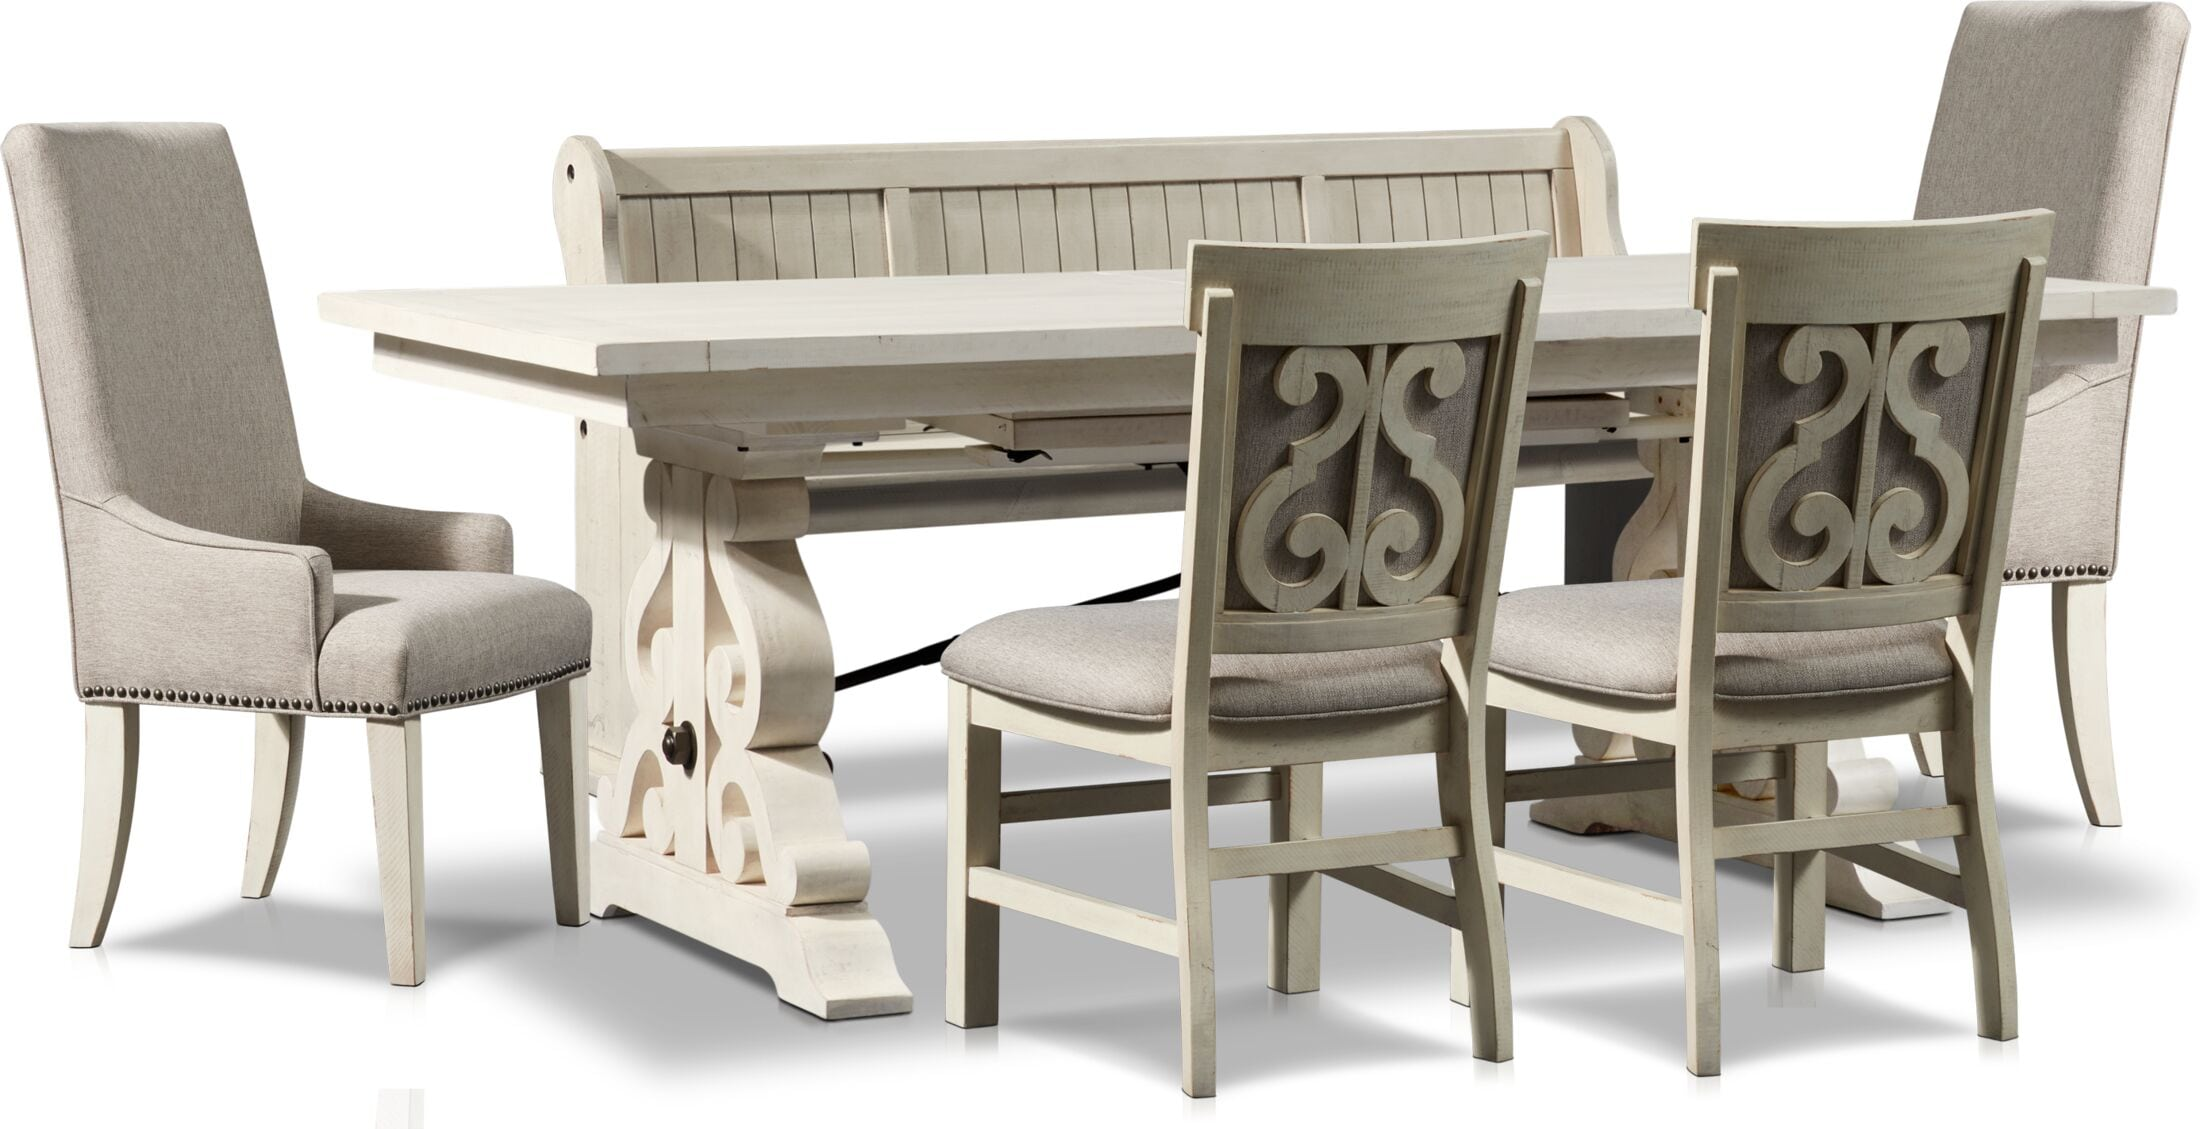 Dining Room Furniture - Charthouse Rectangular Dining Table, 2 Host Chairs, 2 Upholstered Dining Chairs and Bench